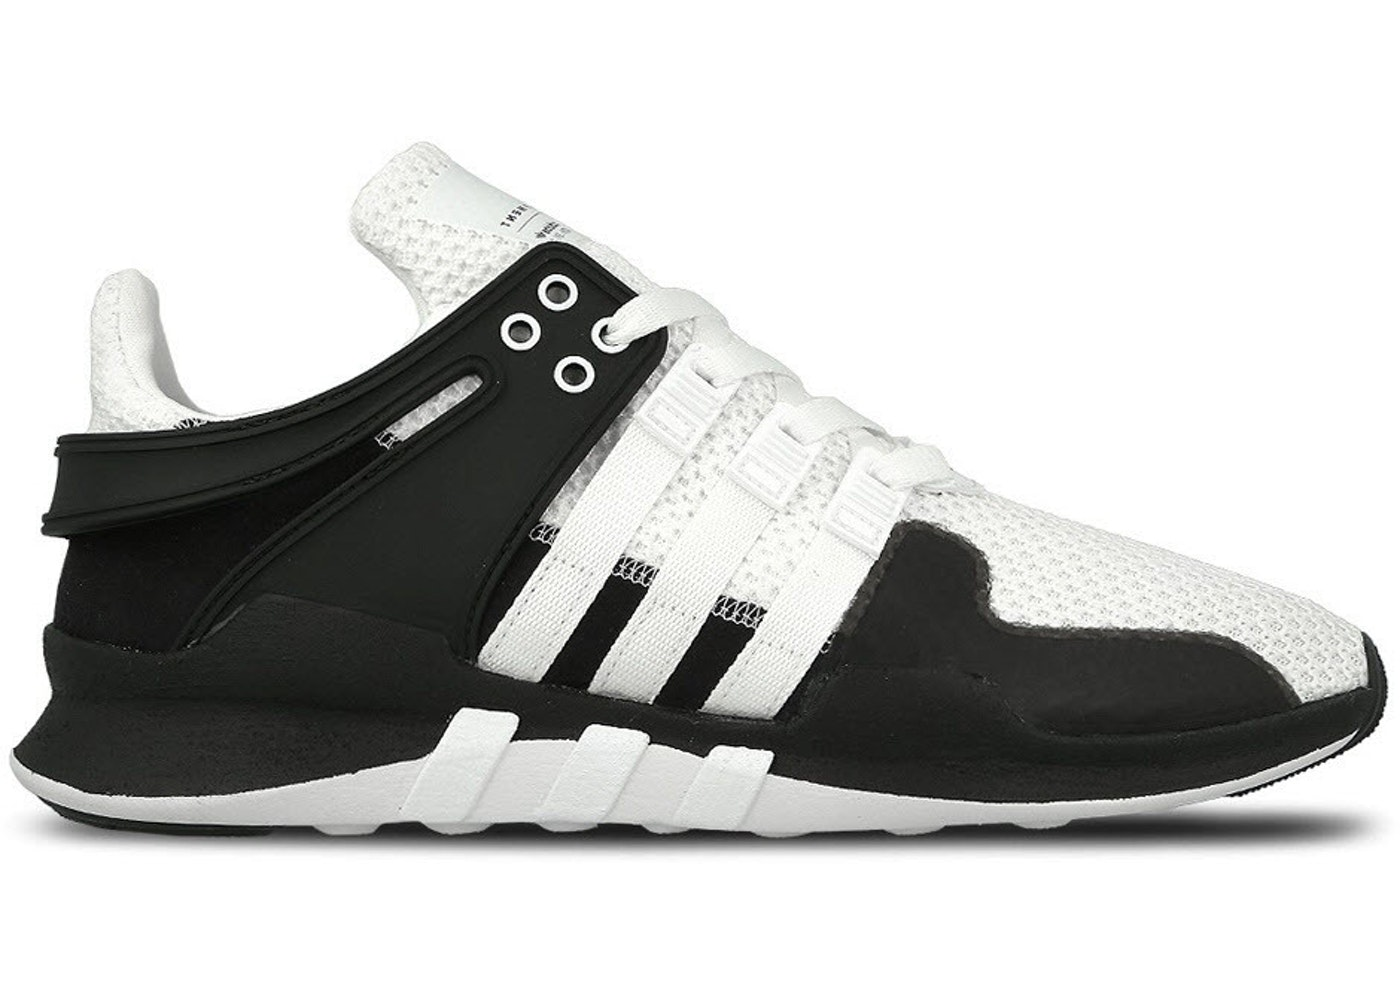 buy online 9a181 0edc8 Adidas Equipment EQT Support 93 17 Black Turbo Review and On